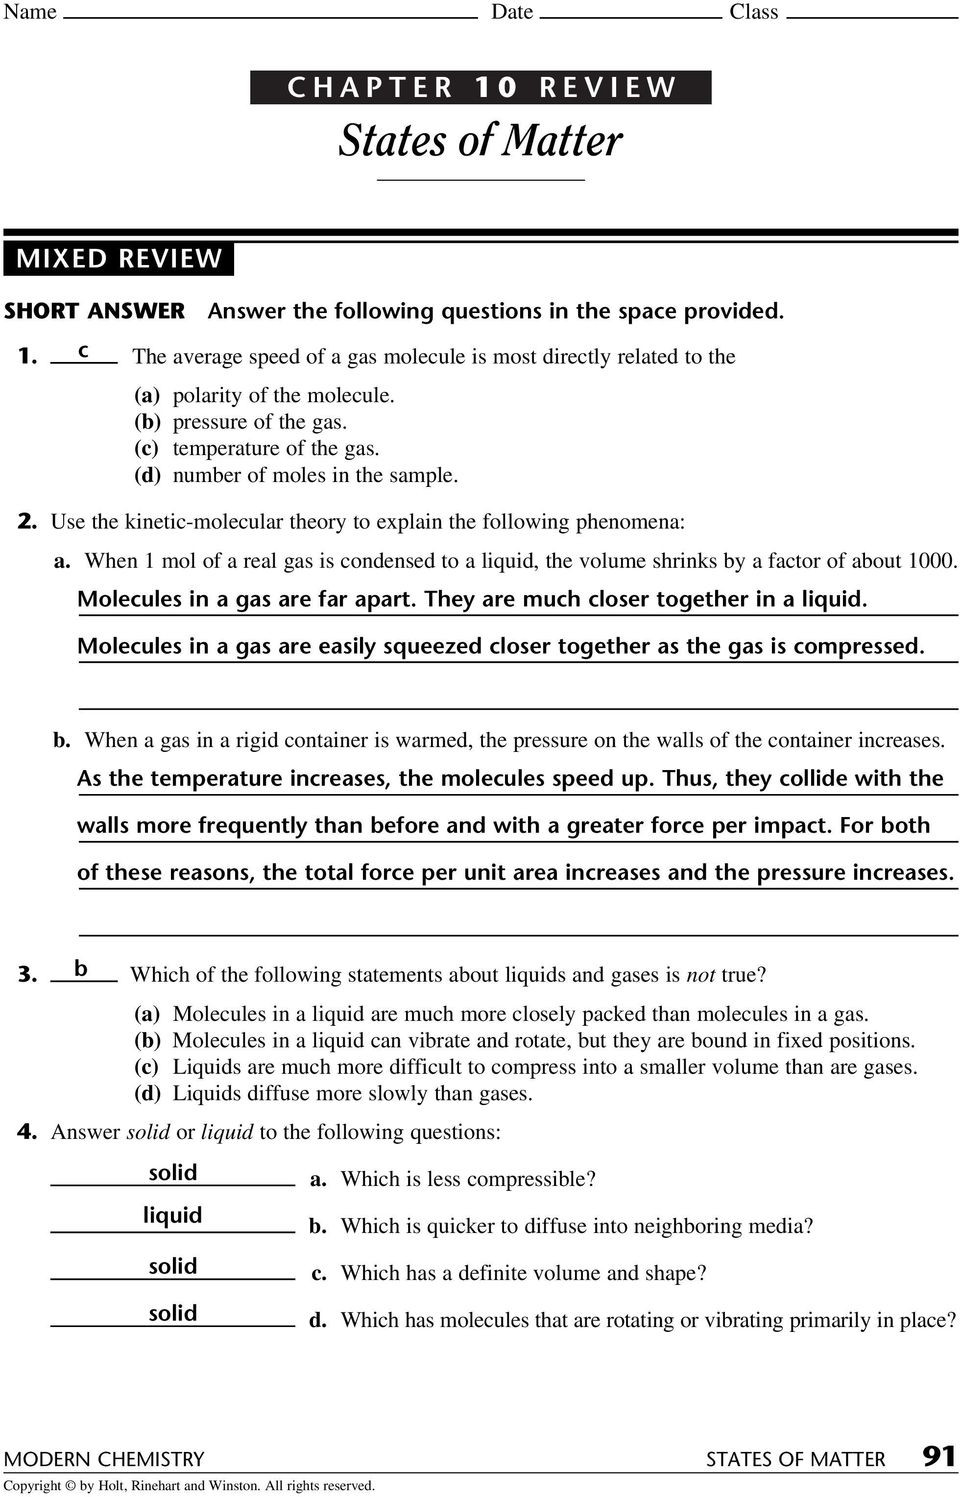 States Of Matter Worksheet Chemistry States Of Matter Chapter 10 Review Section 1 Name Date